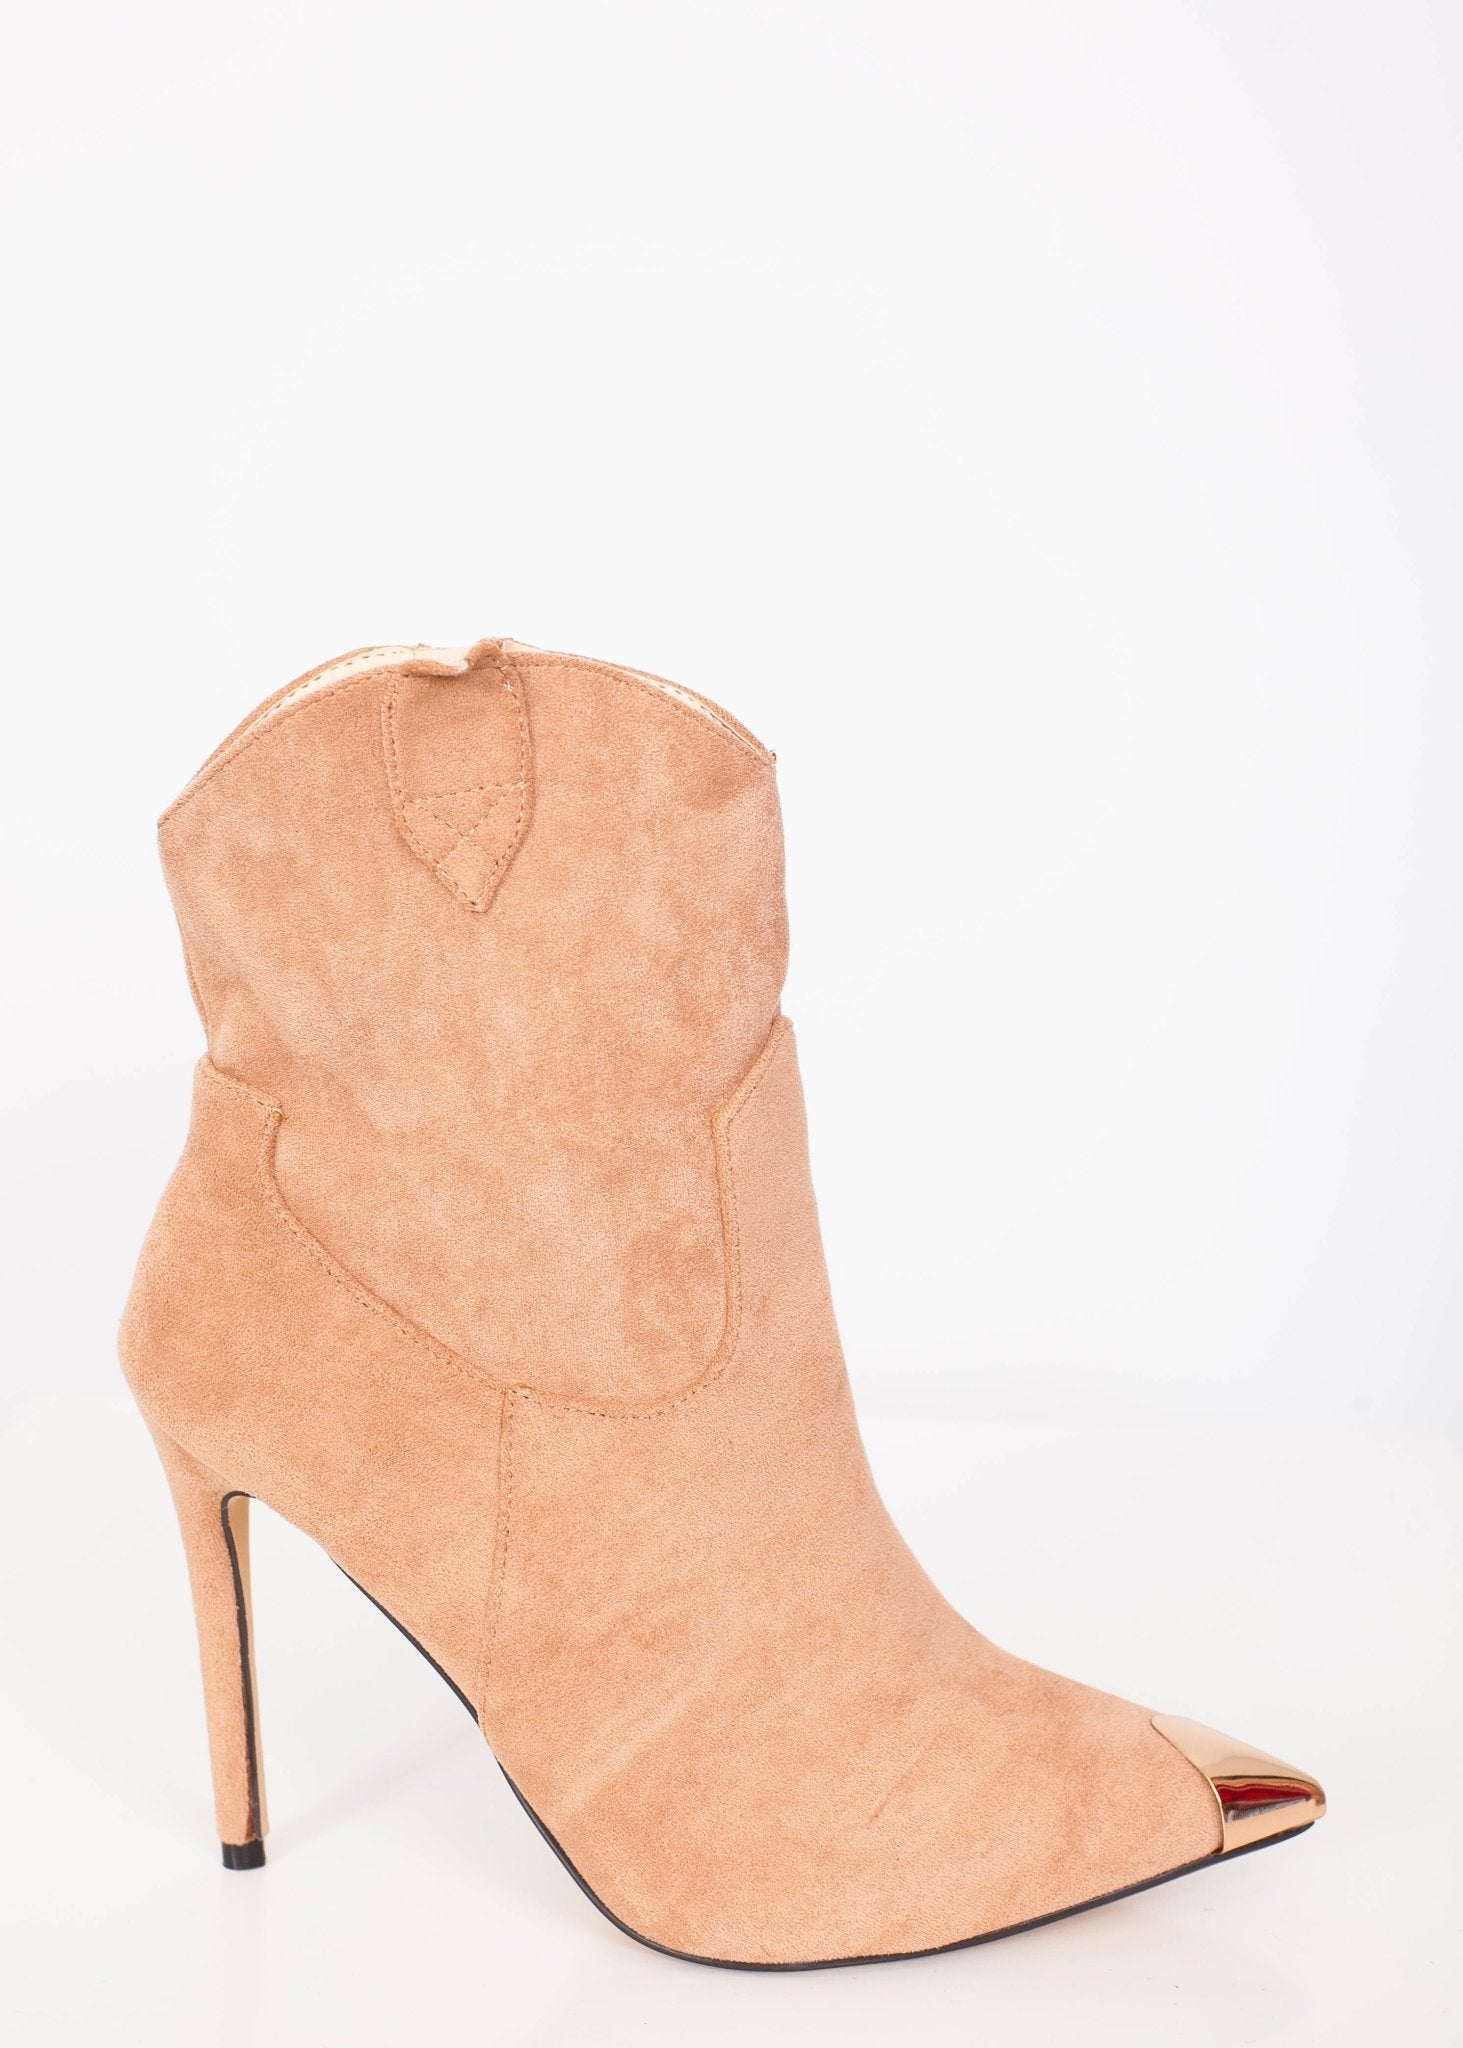 Priya Suede Heel Boots - The Walk in Wardrobe